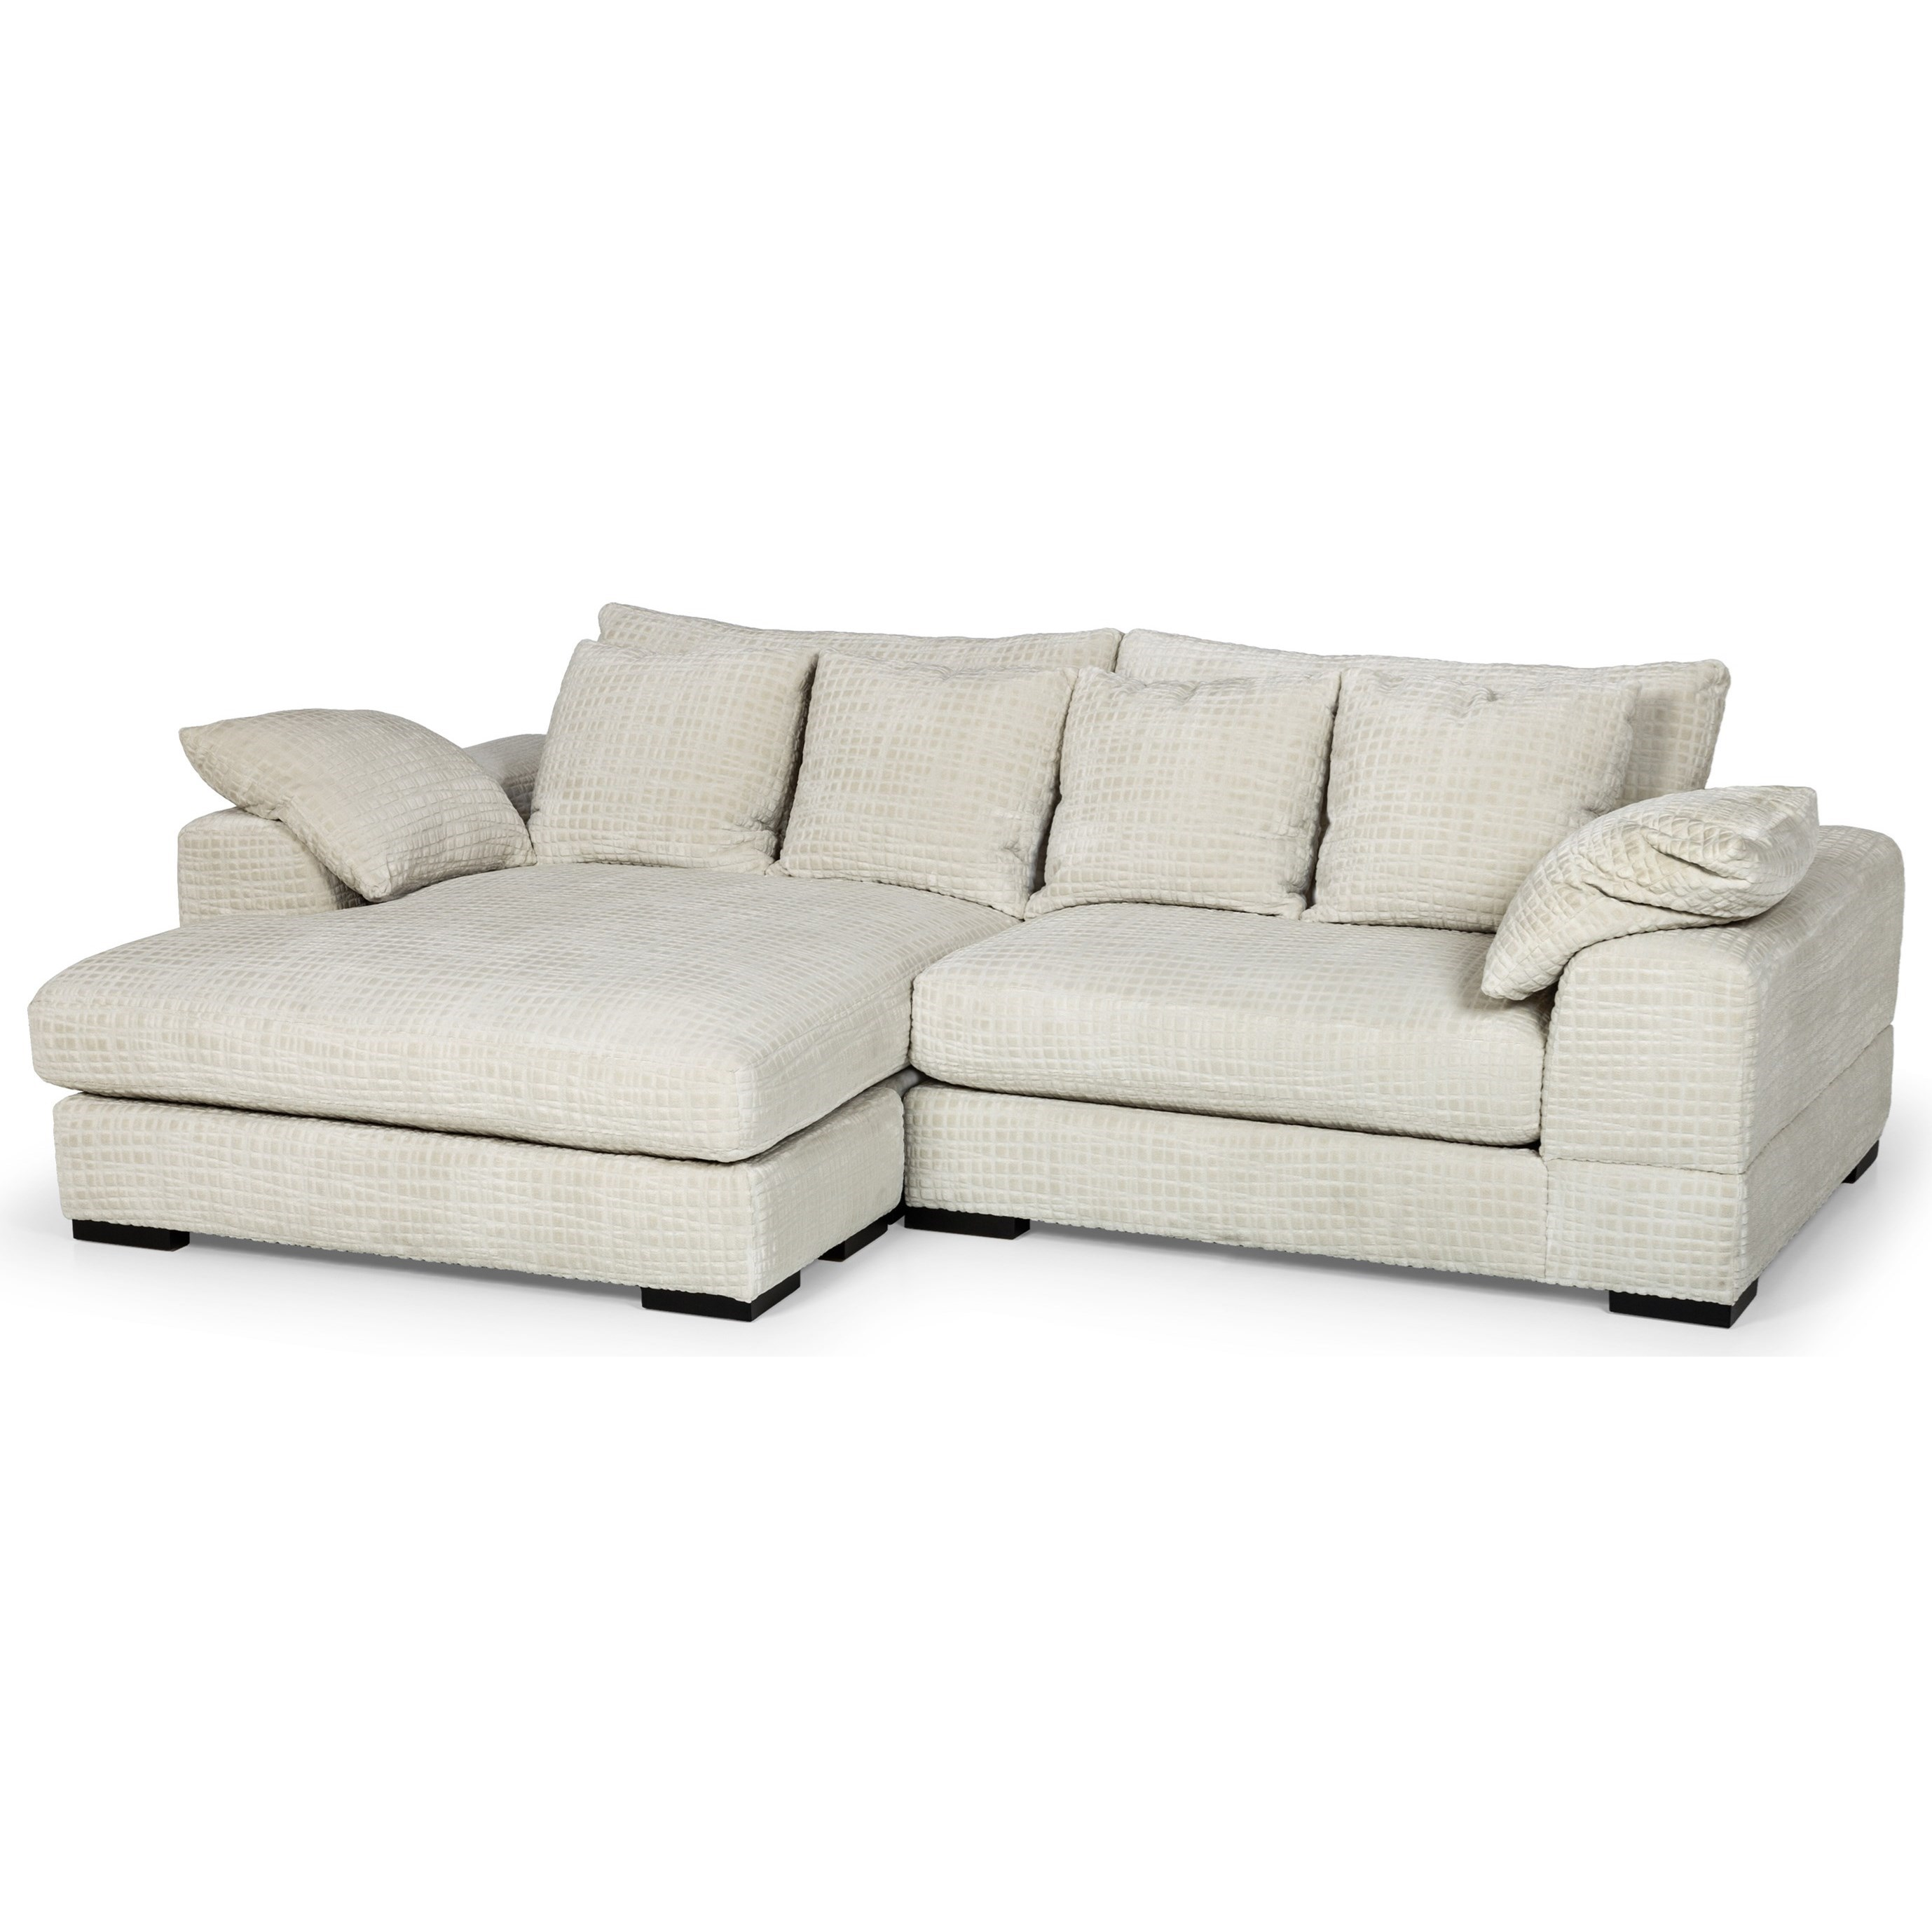 2-Piece Sectional Sofa w/ LAF Chaise